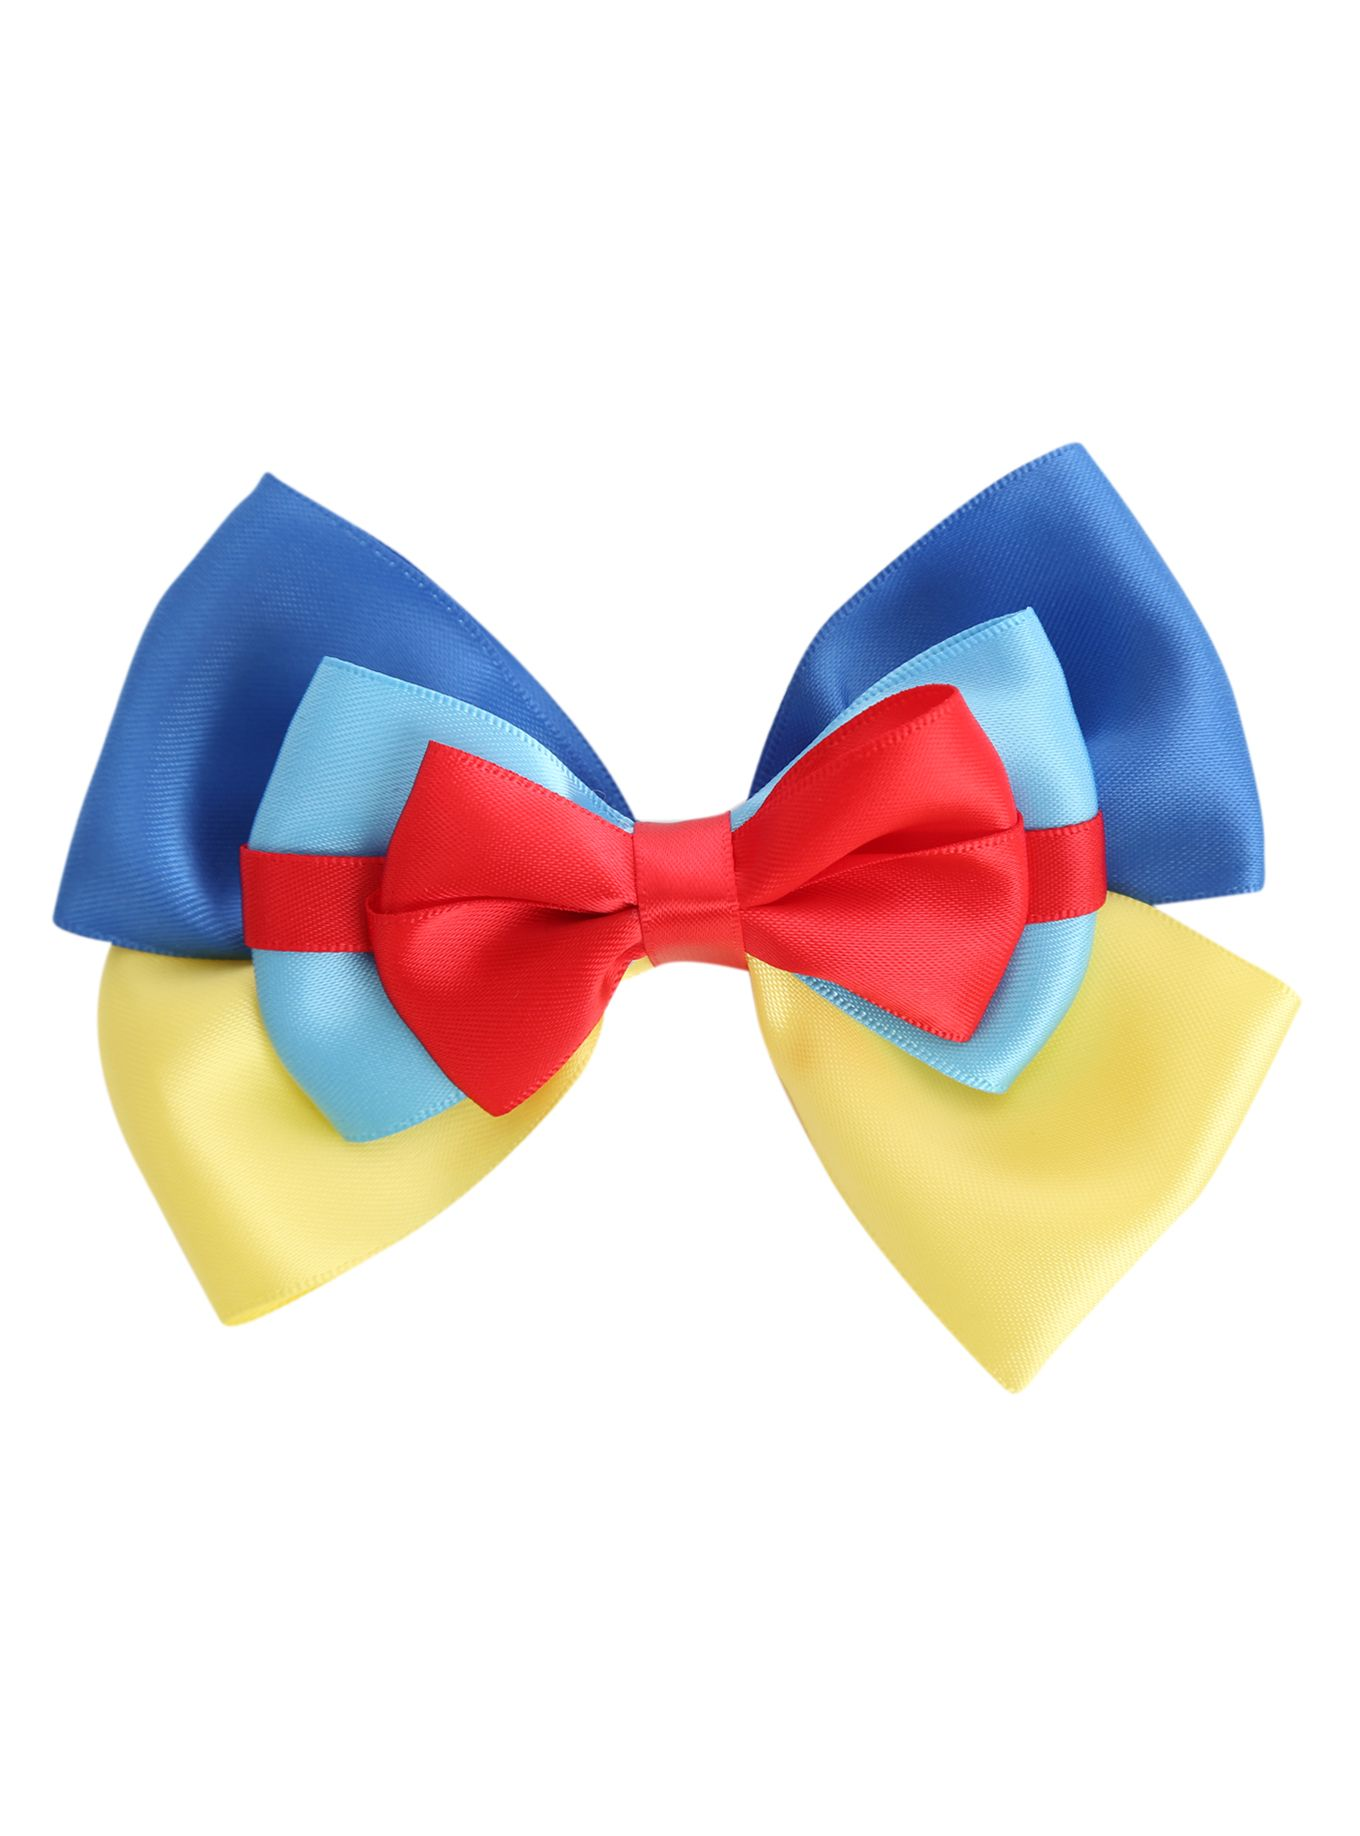 Disney Snow White And The Seven Dwarfs Cosplay Hair Bow Hot Topic